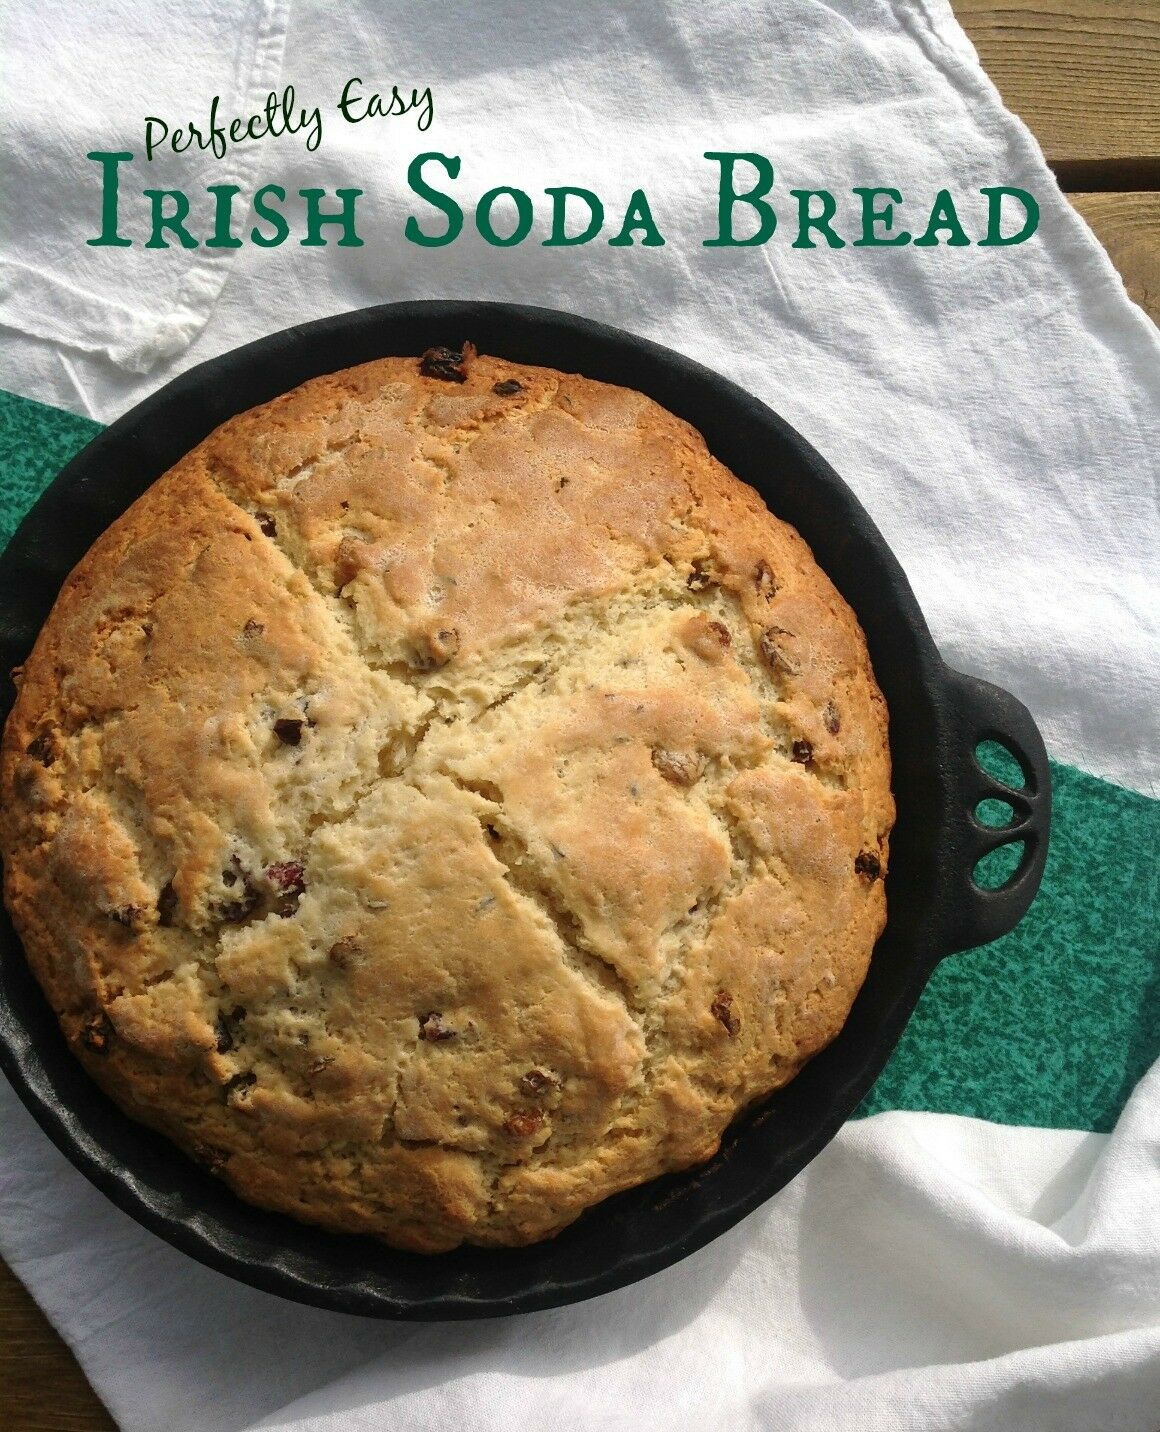 ... Irish persons, for your pleasure, this Soda Bread is amazingly easy to